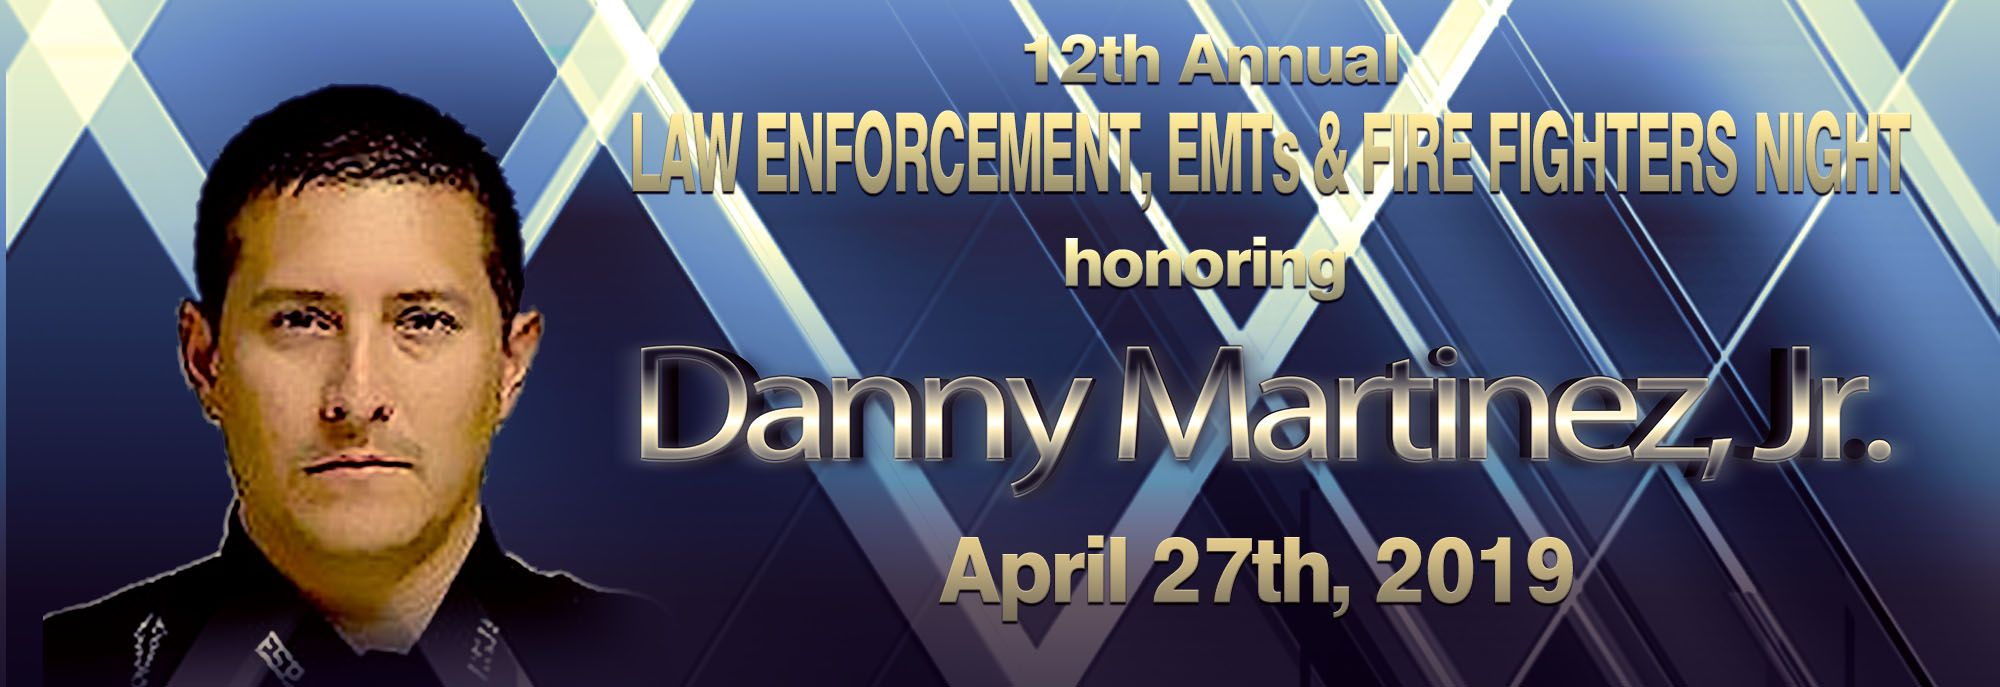 12th Annual Law Enforcement, EMTs and FIrefighters Night Honoring Danny Martinez, Jr.